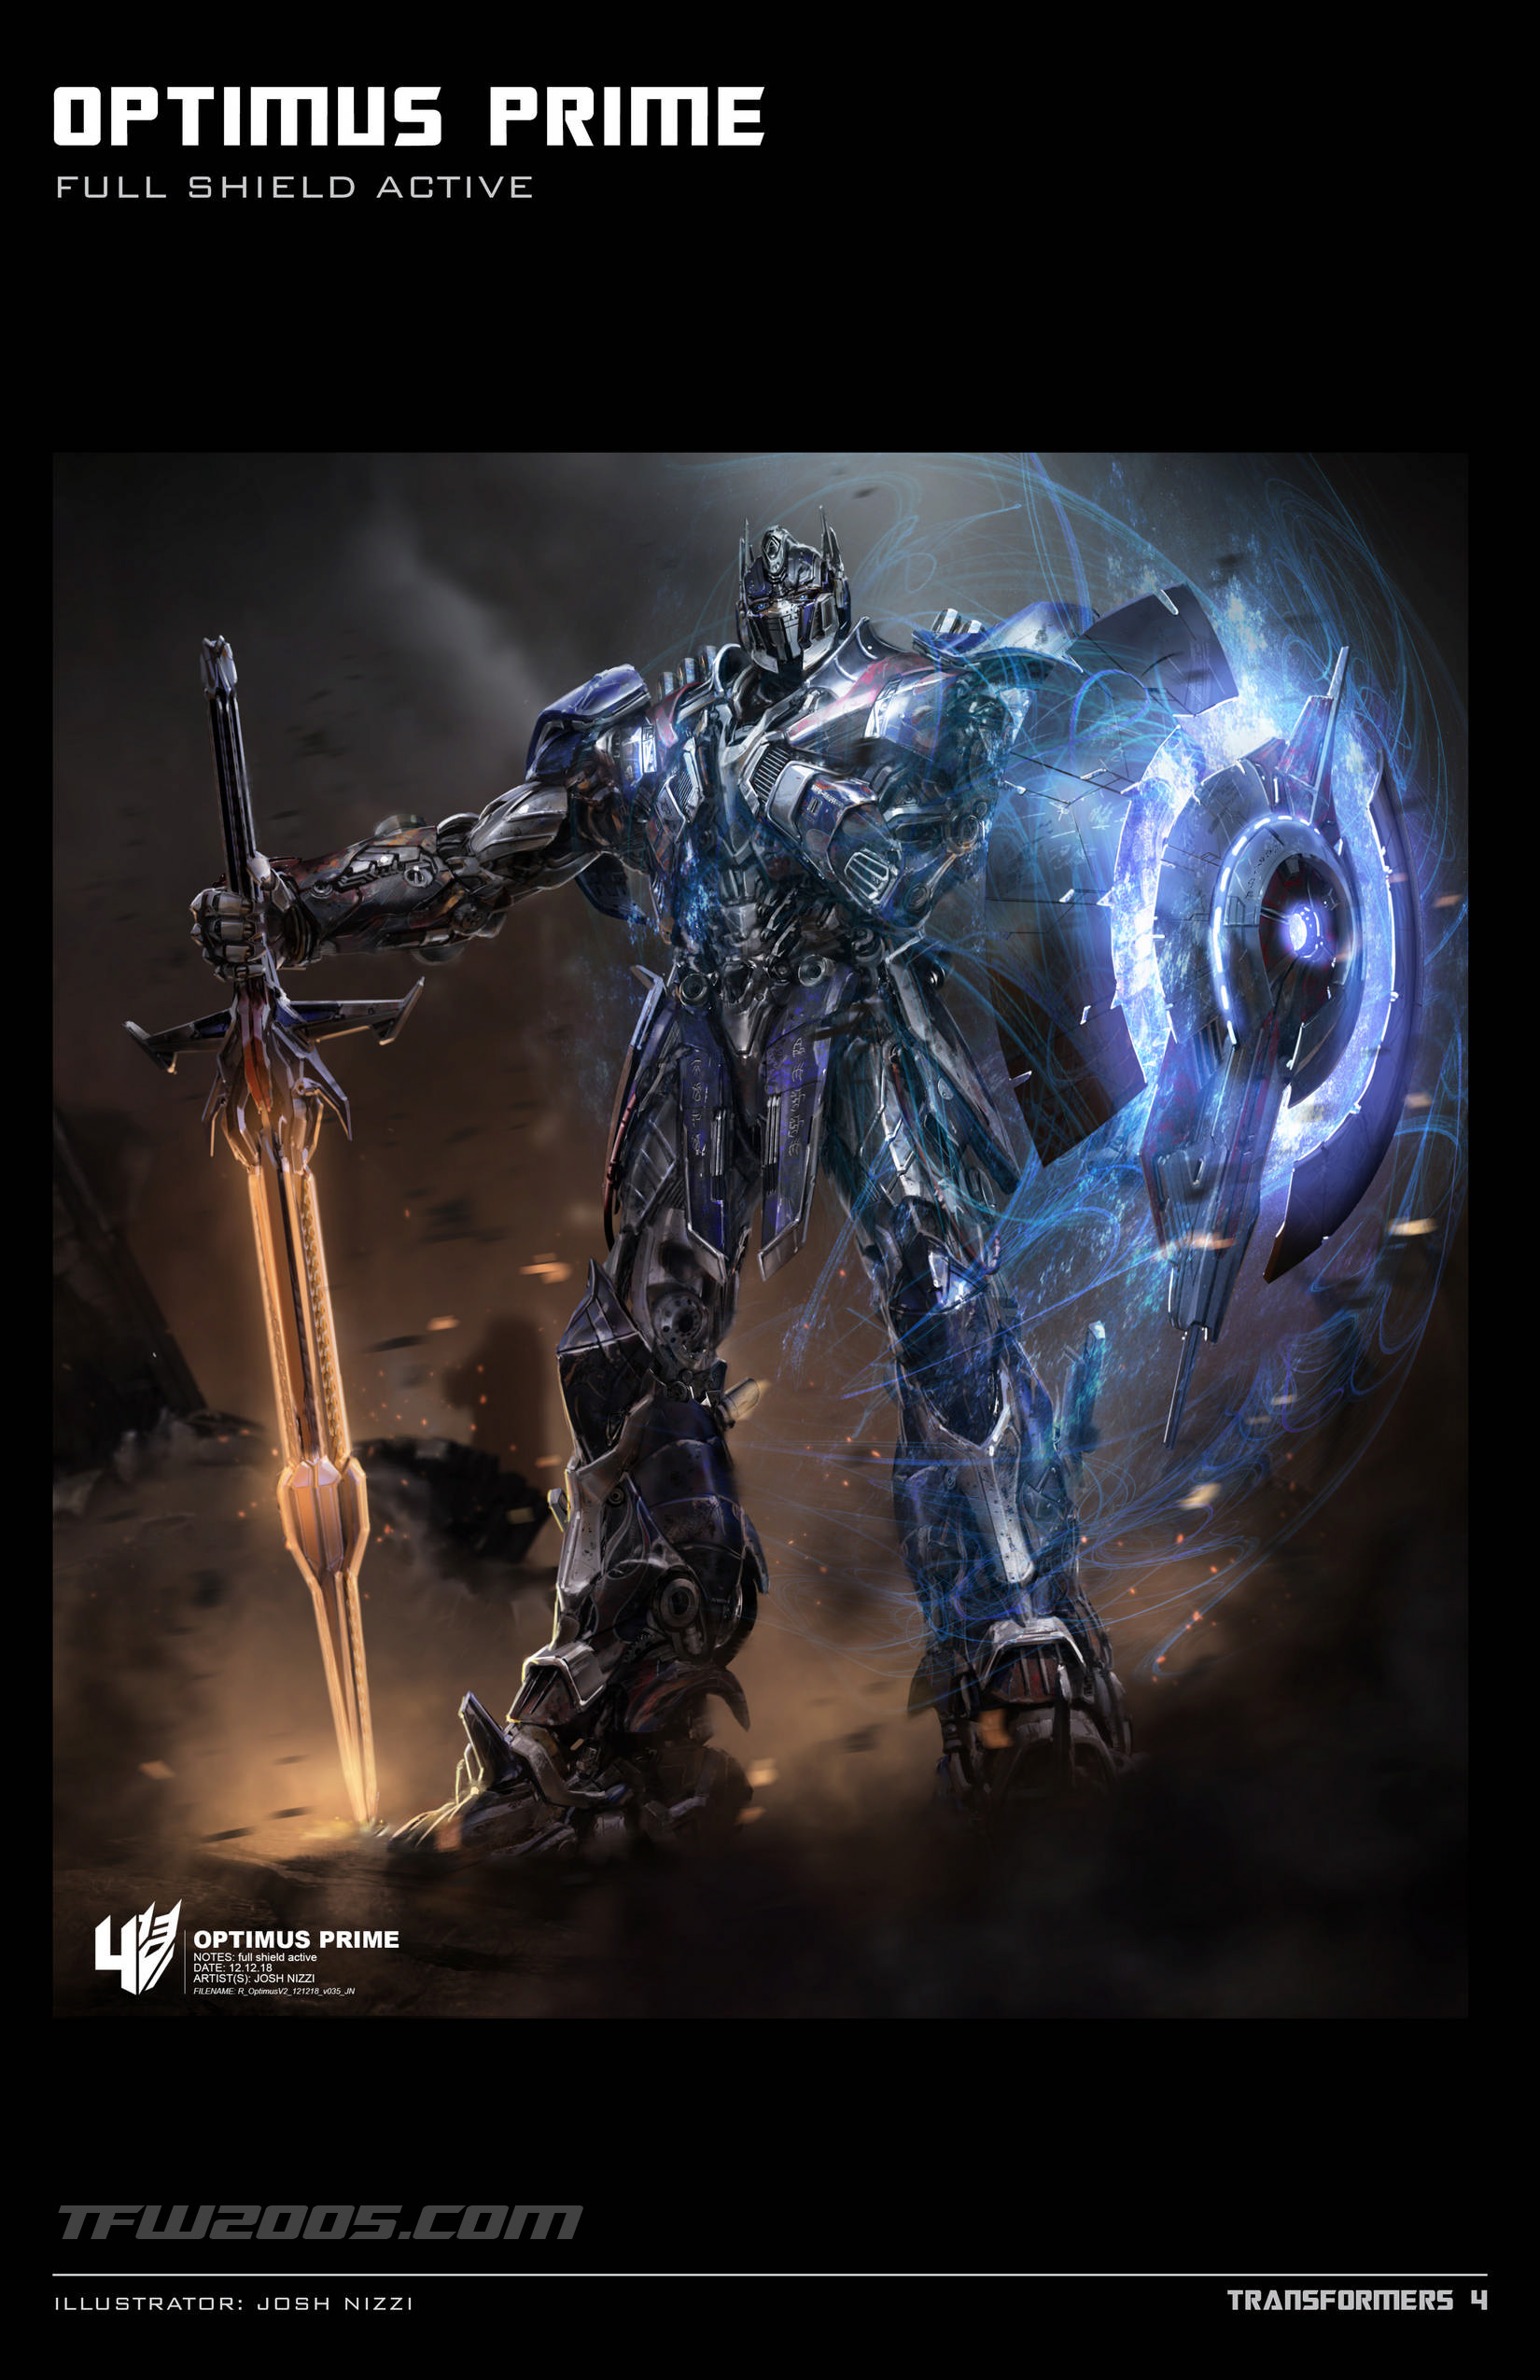 Transformers age of extinction galvatron is online betting do you have to pay tax on bet winnings